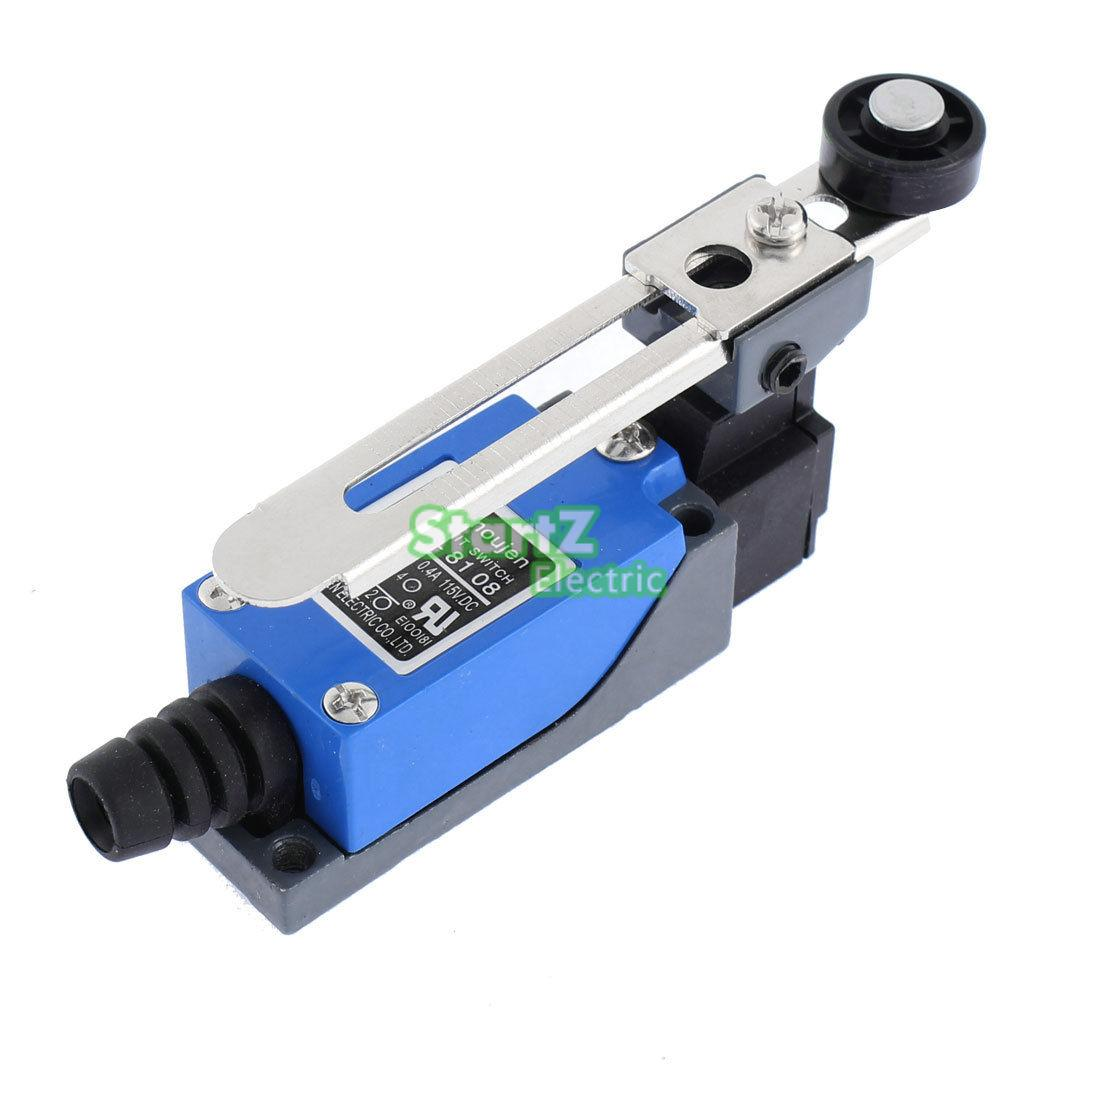 New Waterproof ME-8108 Momentary AC Limit Switch For CNC Mill Laser Plasma professional electrical switches dustproof rotary roller lever limit switch overtravel limit for cnc mill laser plasma me 8108